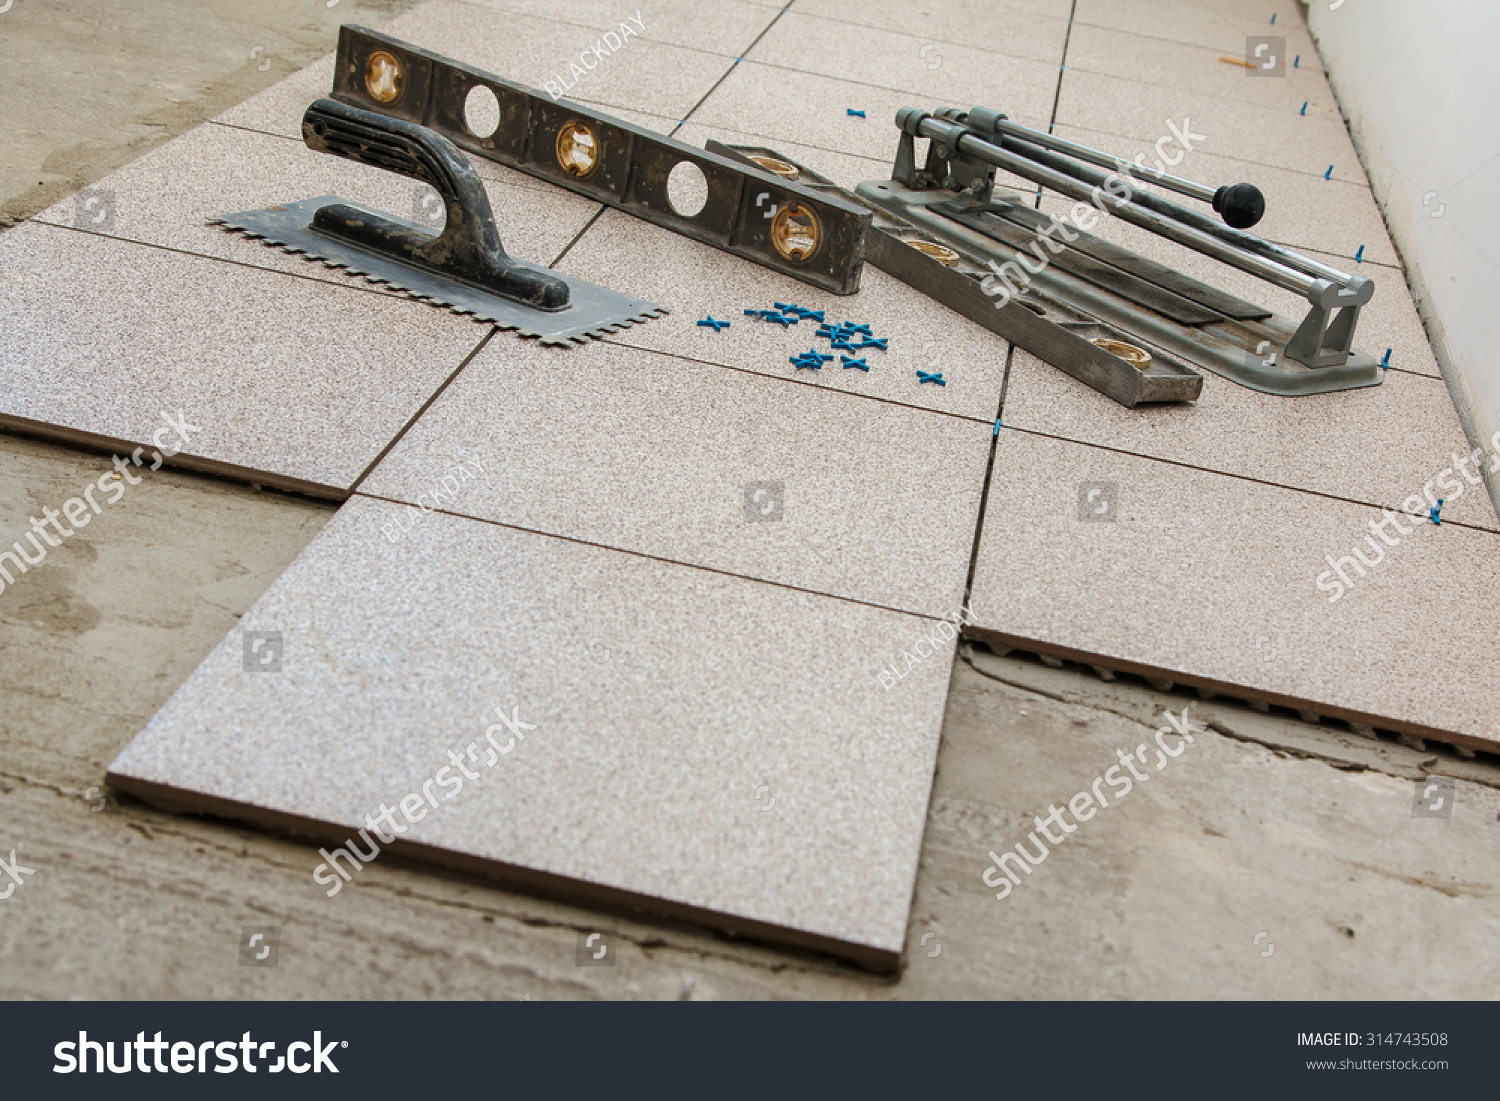 Installation floor tiles ceramic tiles different stock photo installation of floor tiles ceramic tiles and different tools dailygadgetfo Gallery